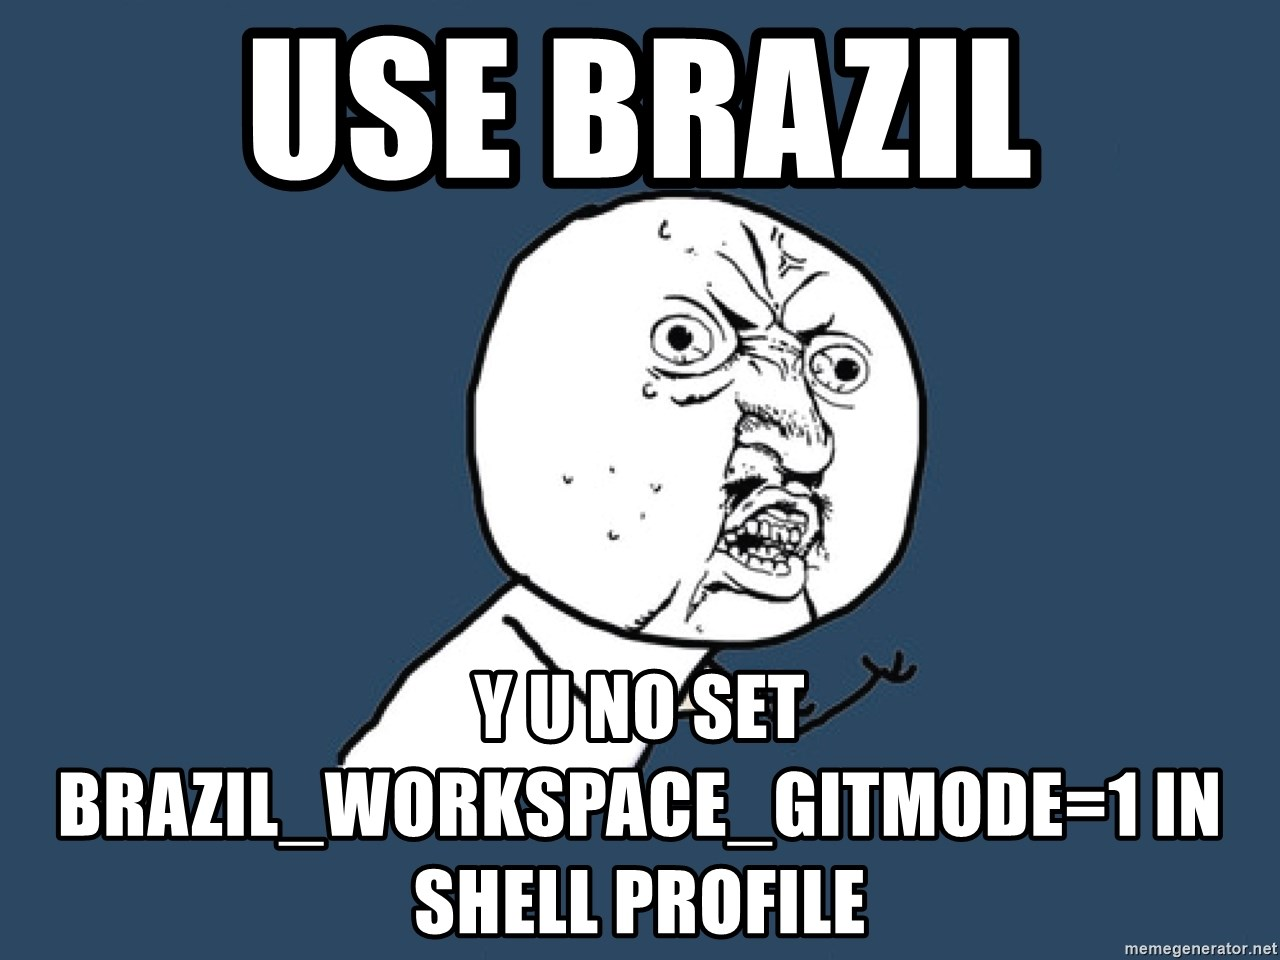 Y U No - use brazil Y u no set BRAZIL_WORKSPACE_GITMODE=1 in shell profile